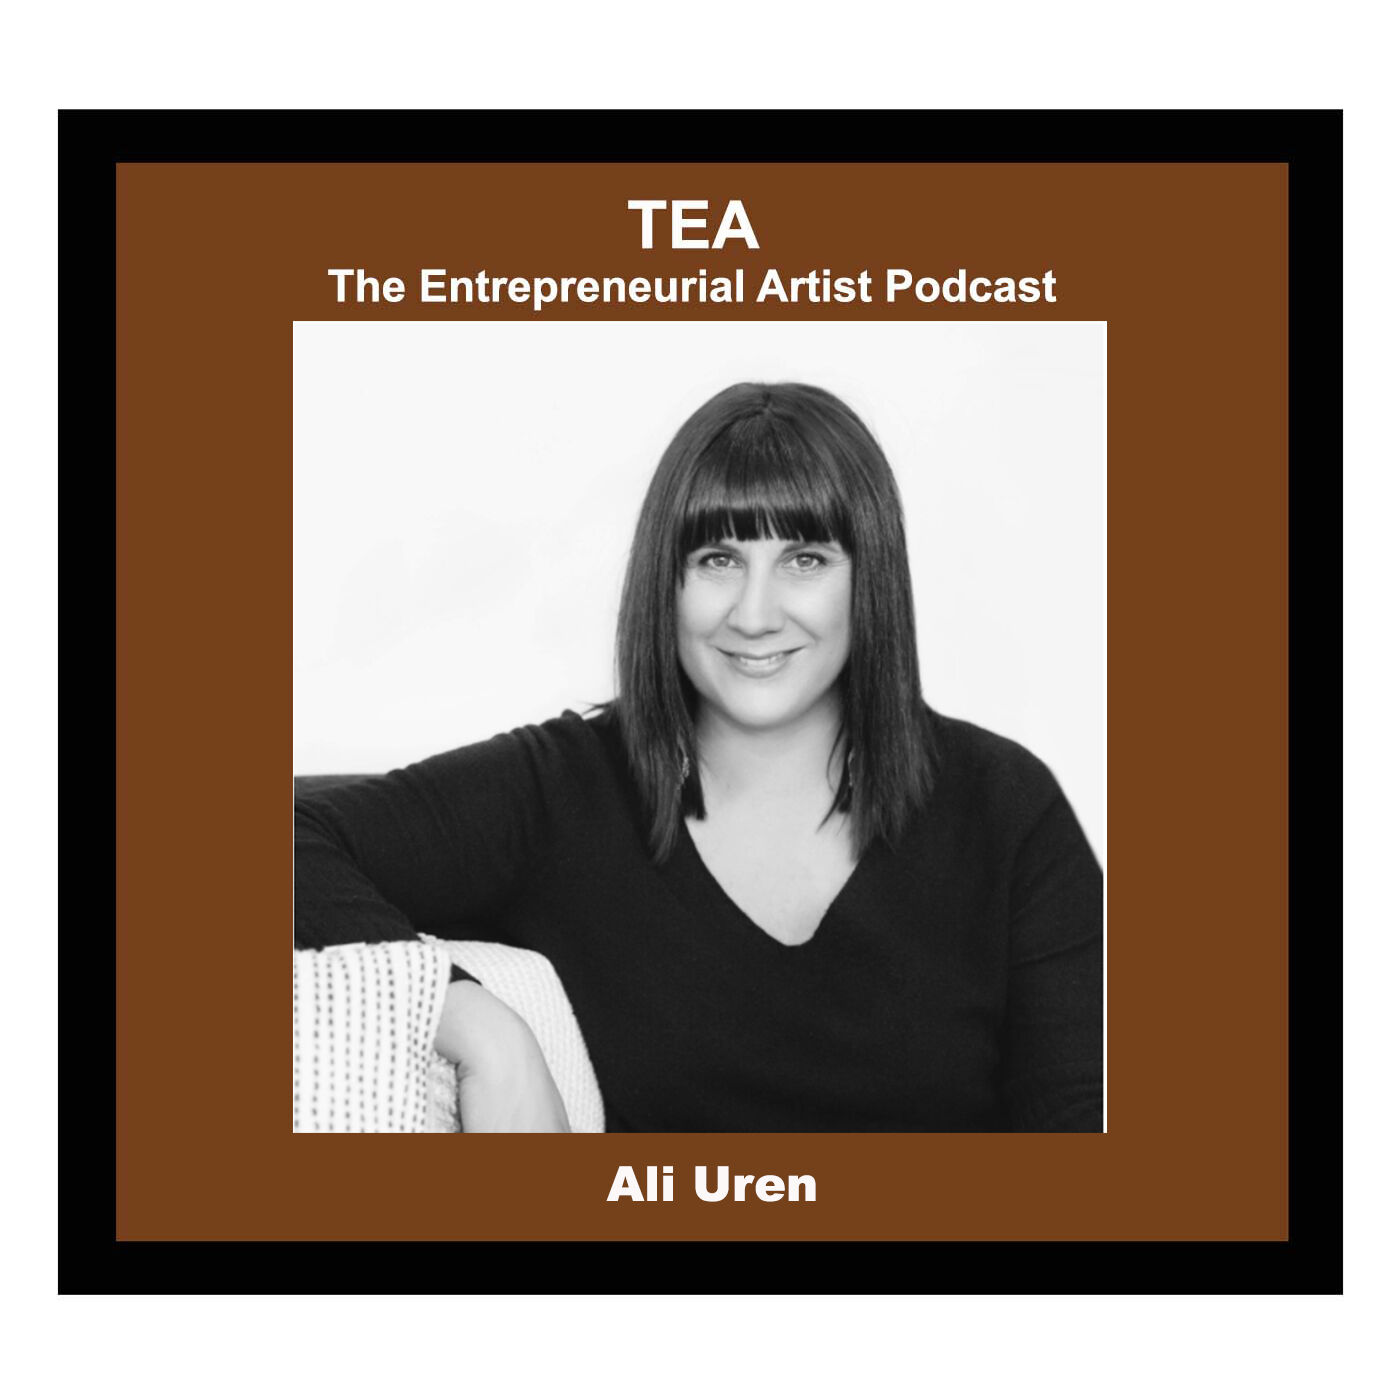 Tania/TEA Podcaster & Ali/KIIKSTART Talk Business for Creatives